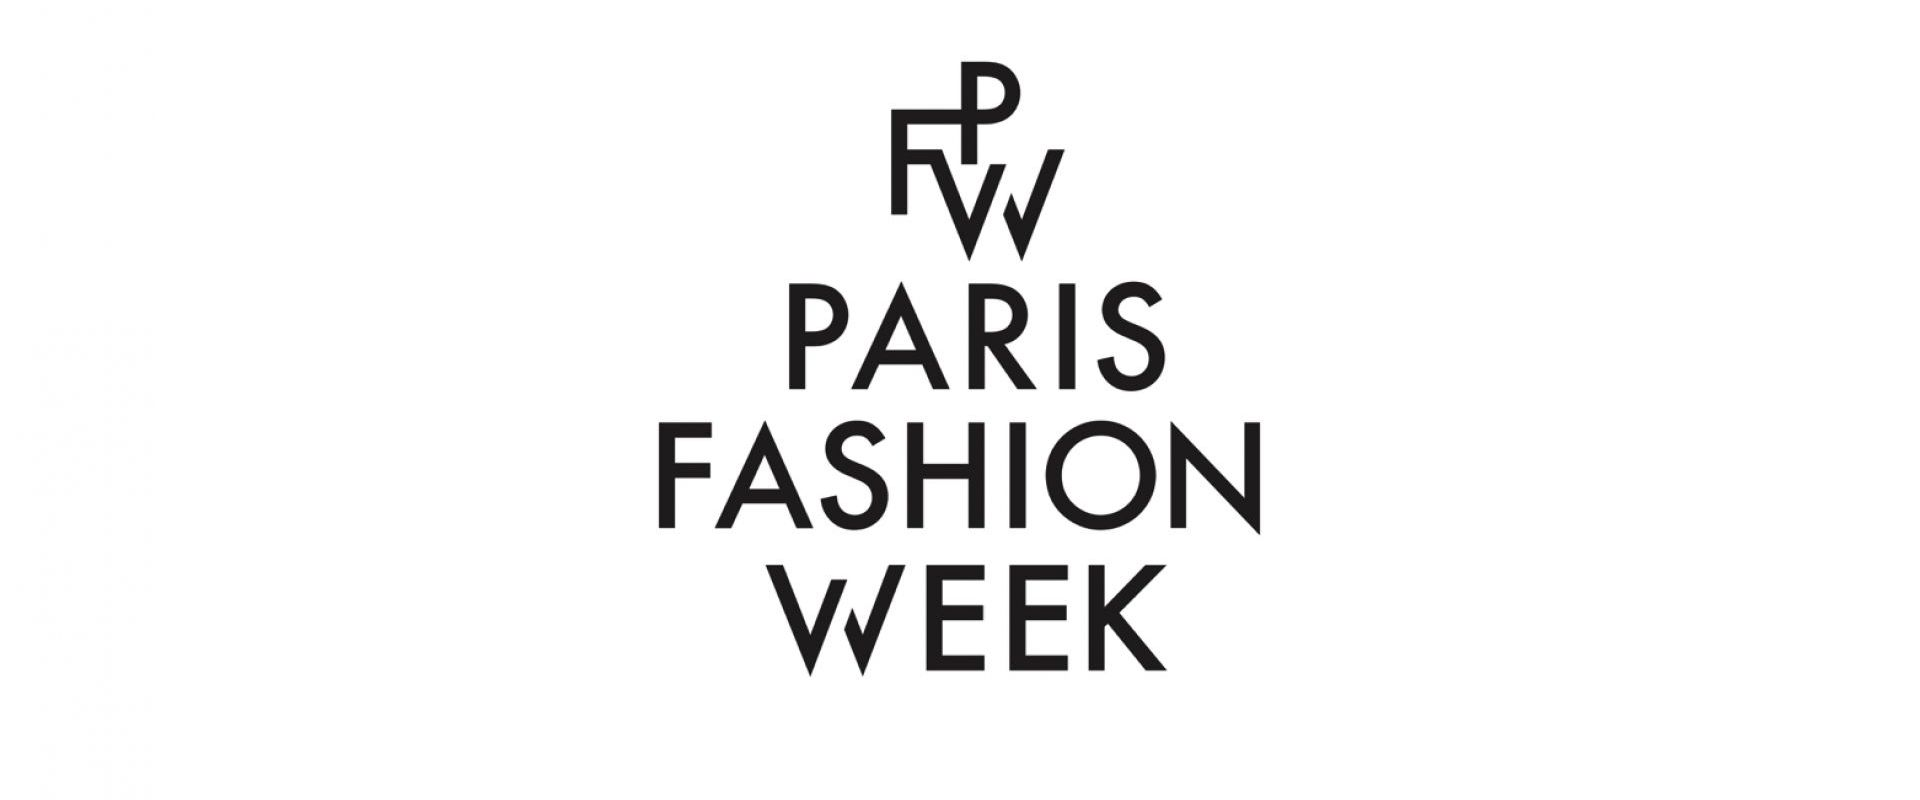 La fin de la Paris Fashion Week